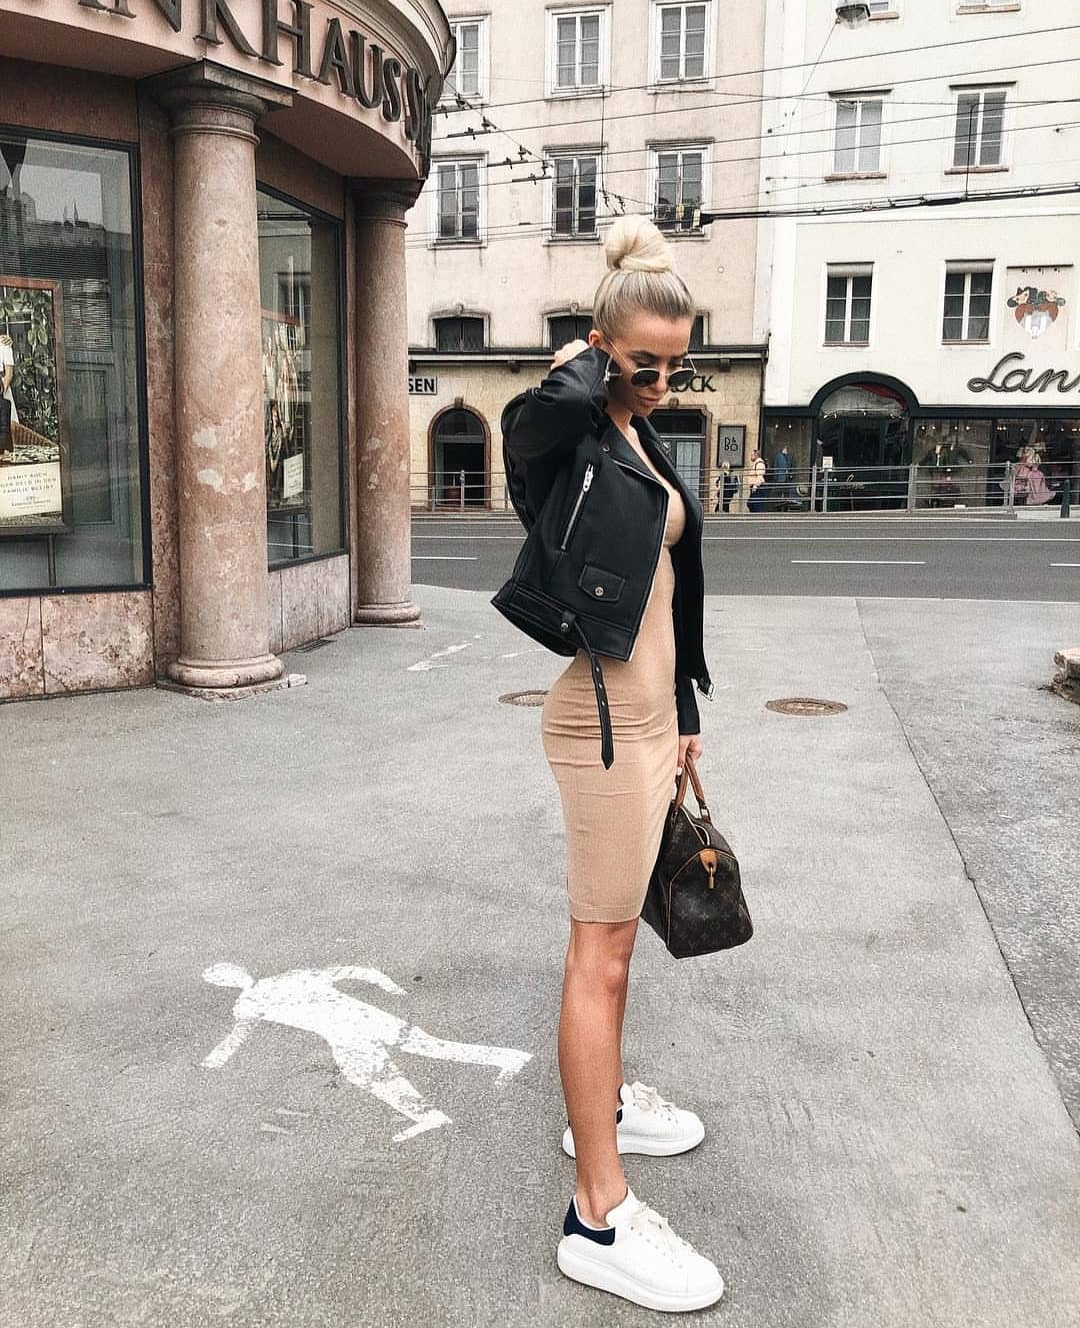 Cream Beige Skin Tight Dress With Black Leather Jacket And White Kicks For Fall 2019